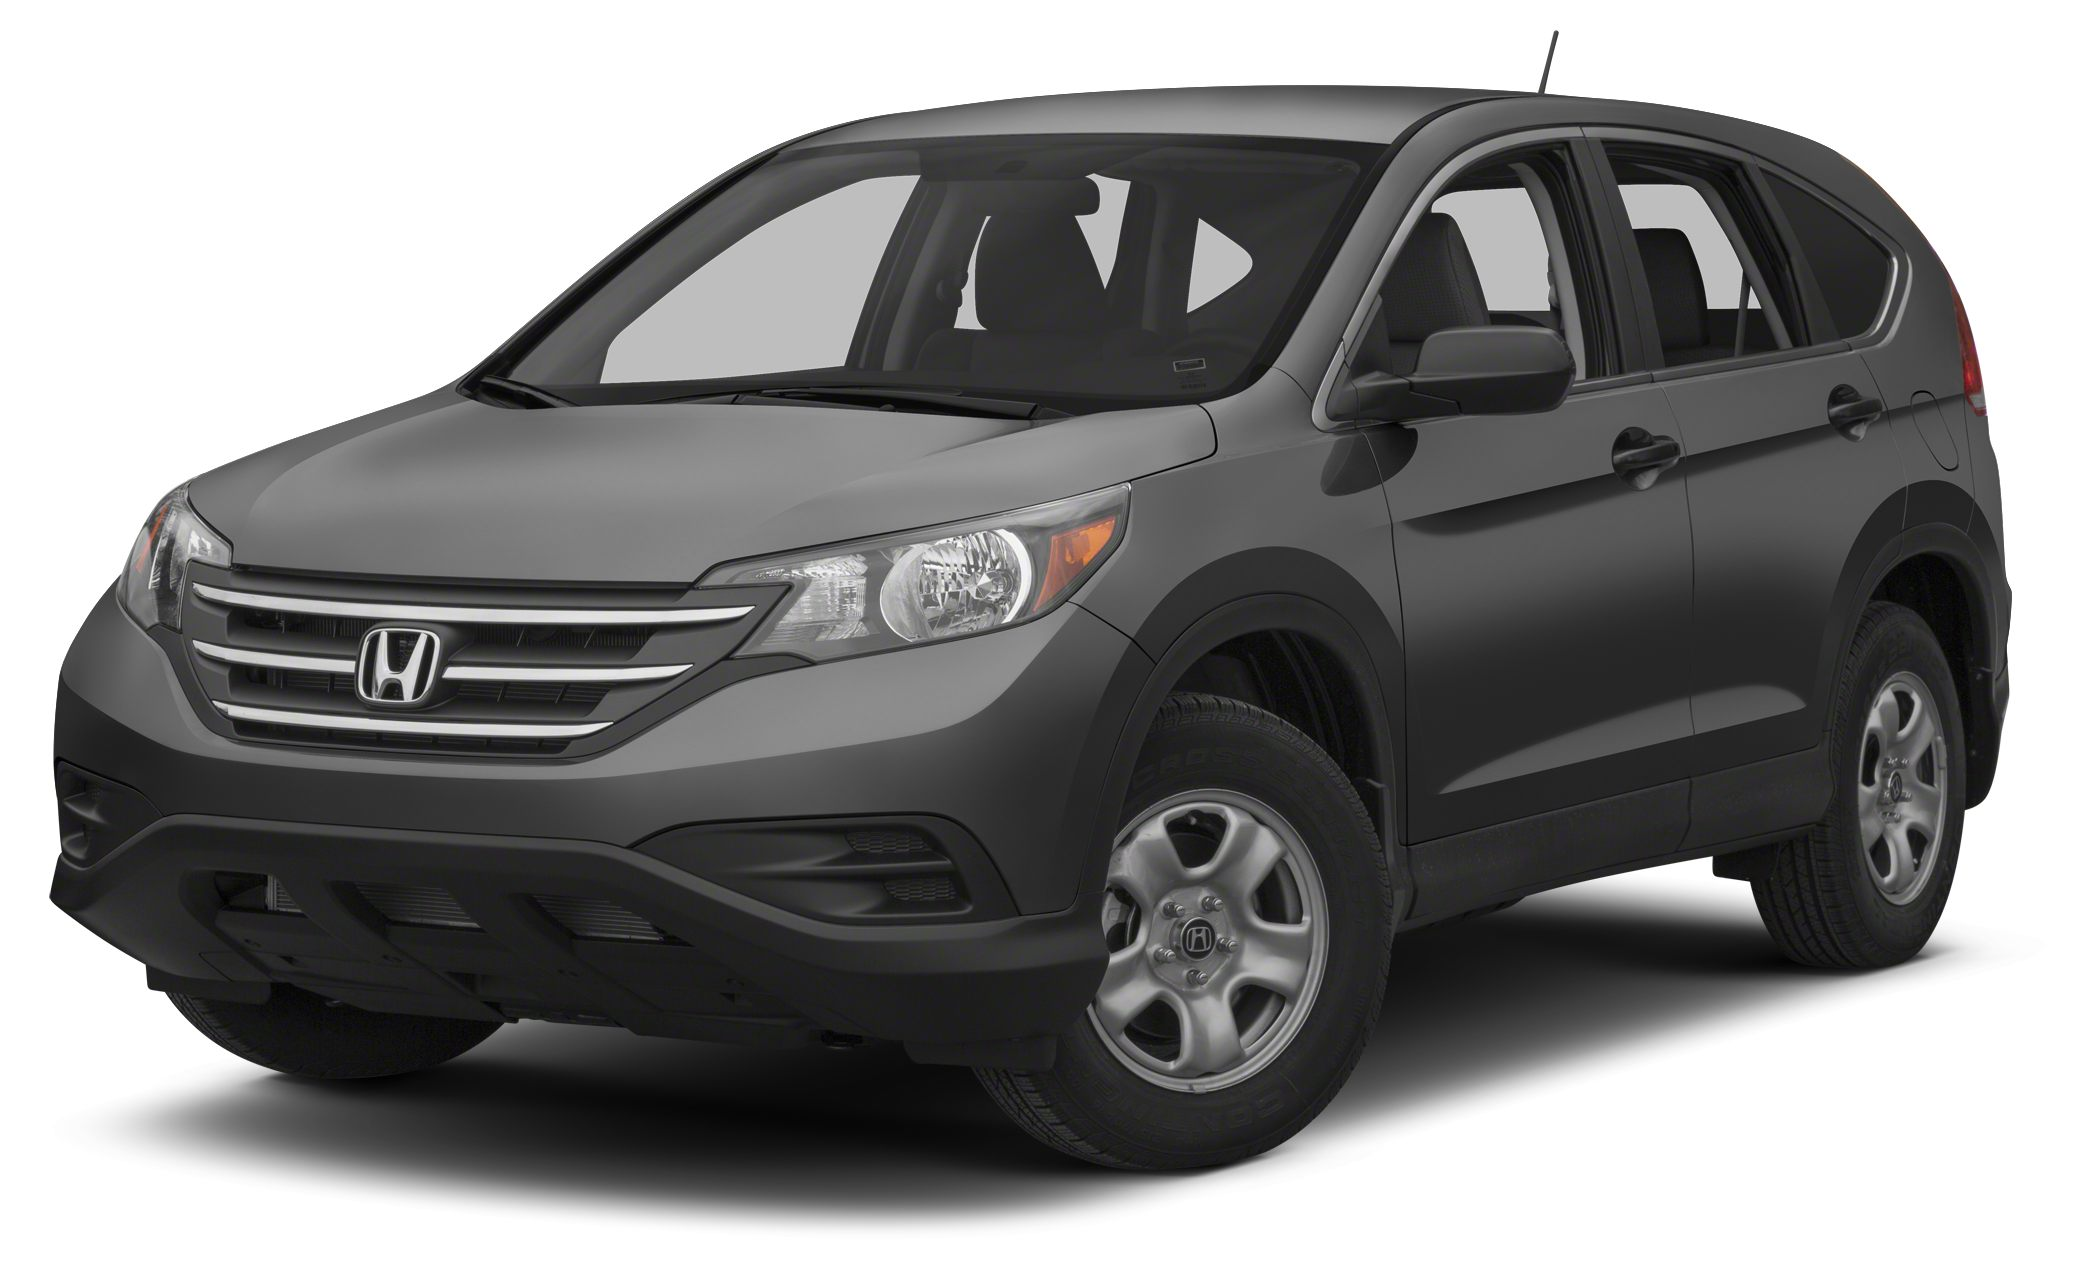 2013 Honda CR-V LX SUV for sale in Salina for $20,498 with 23,658 miles